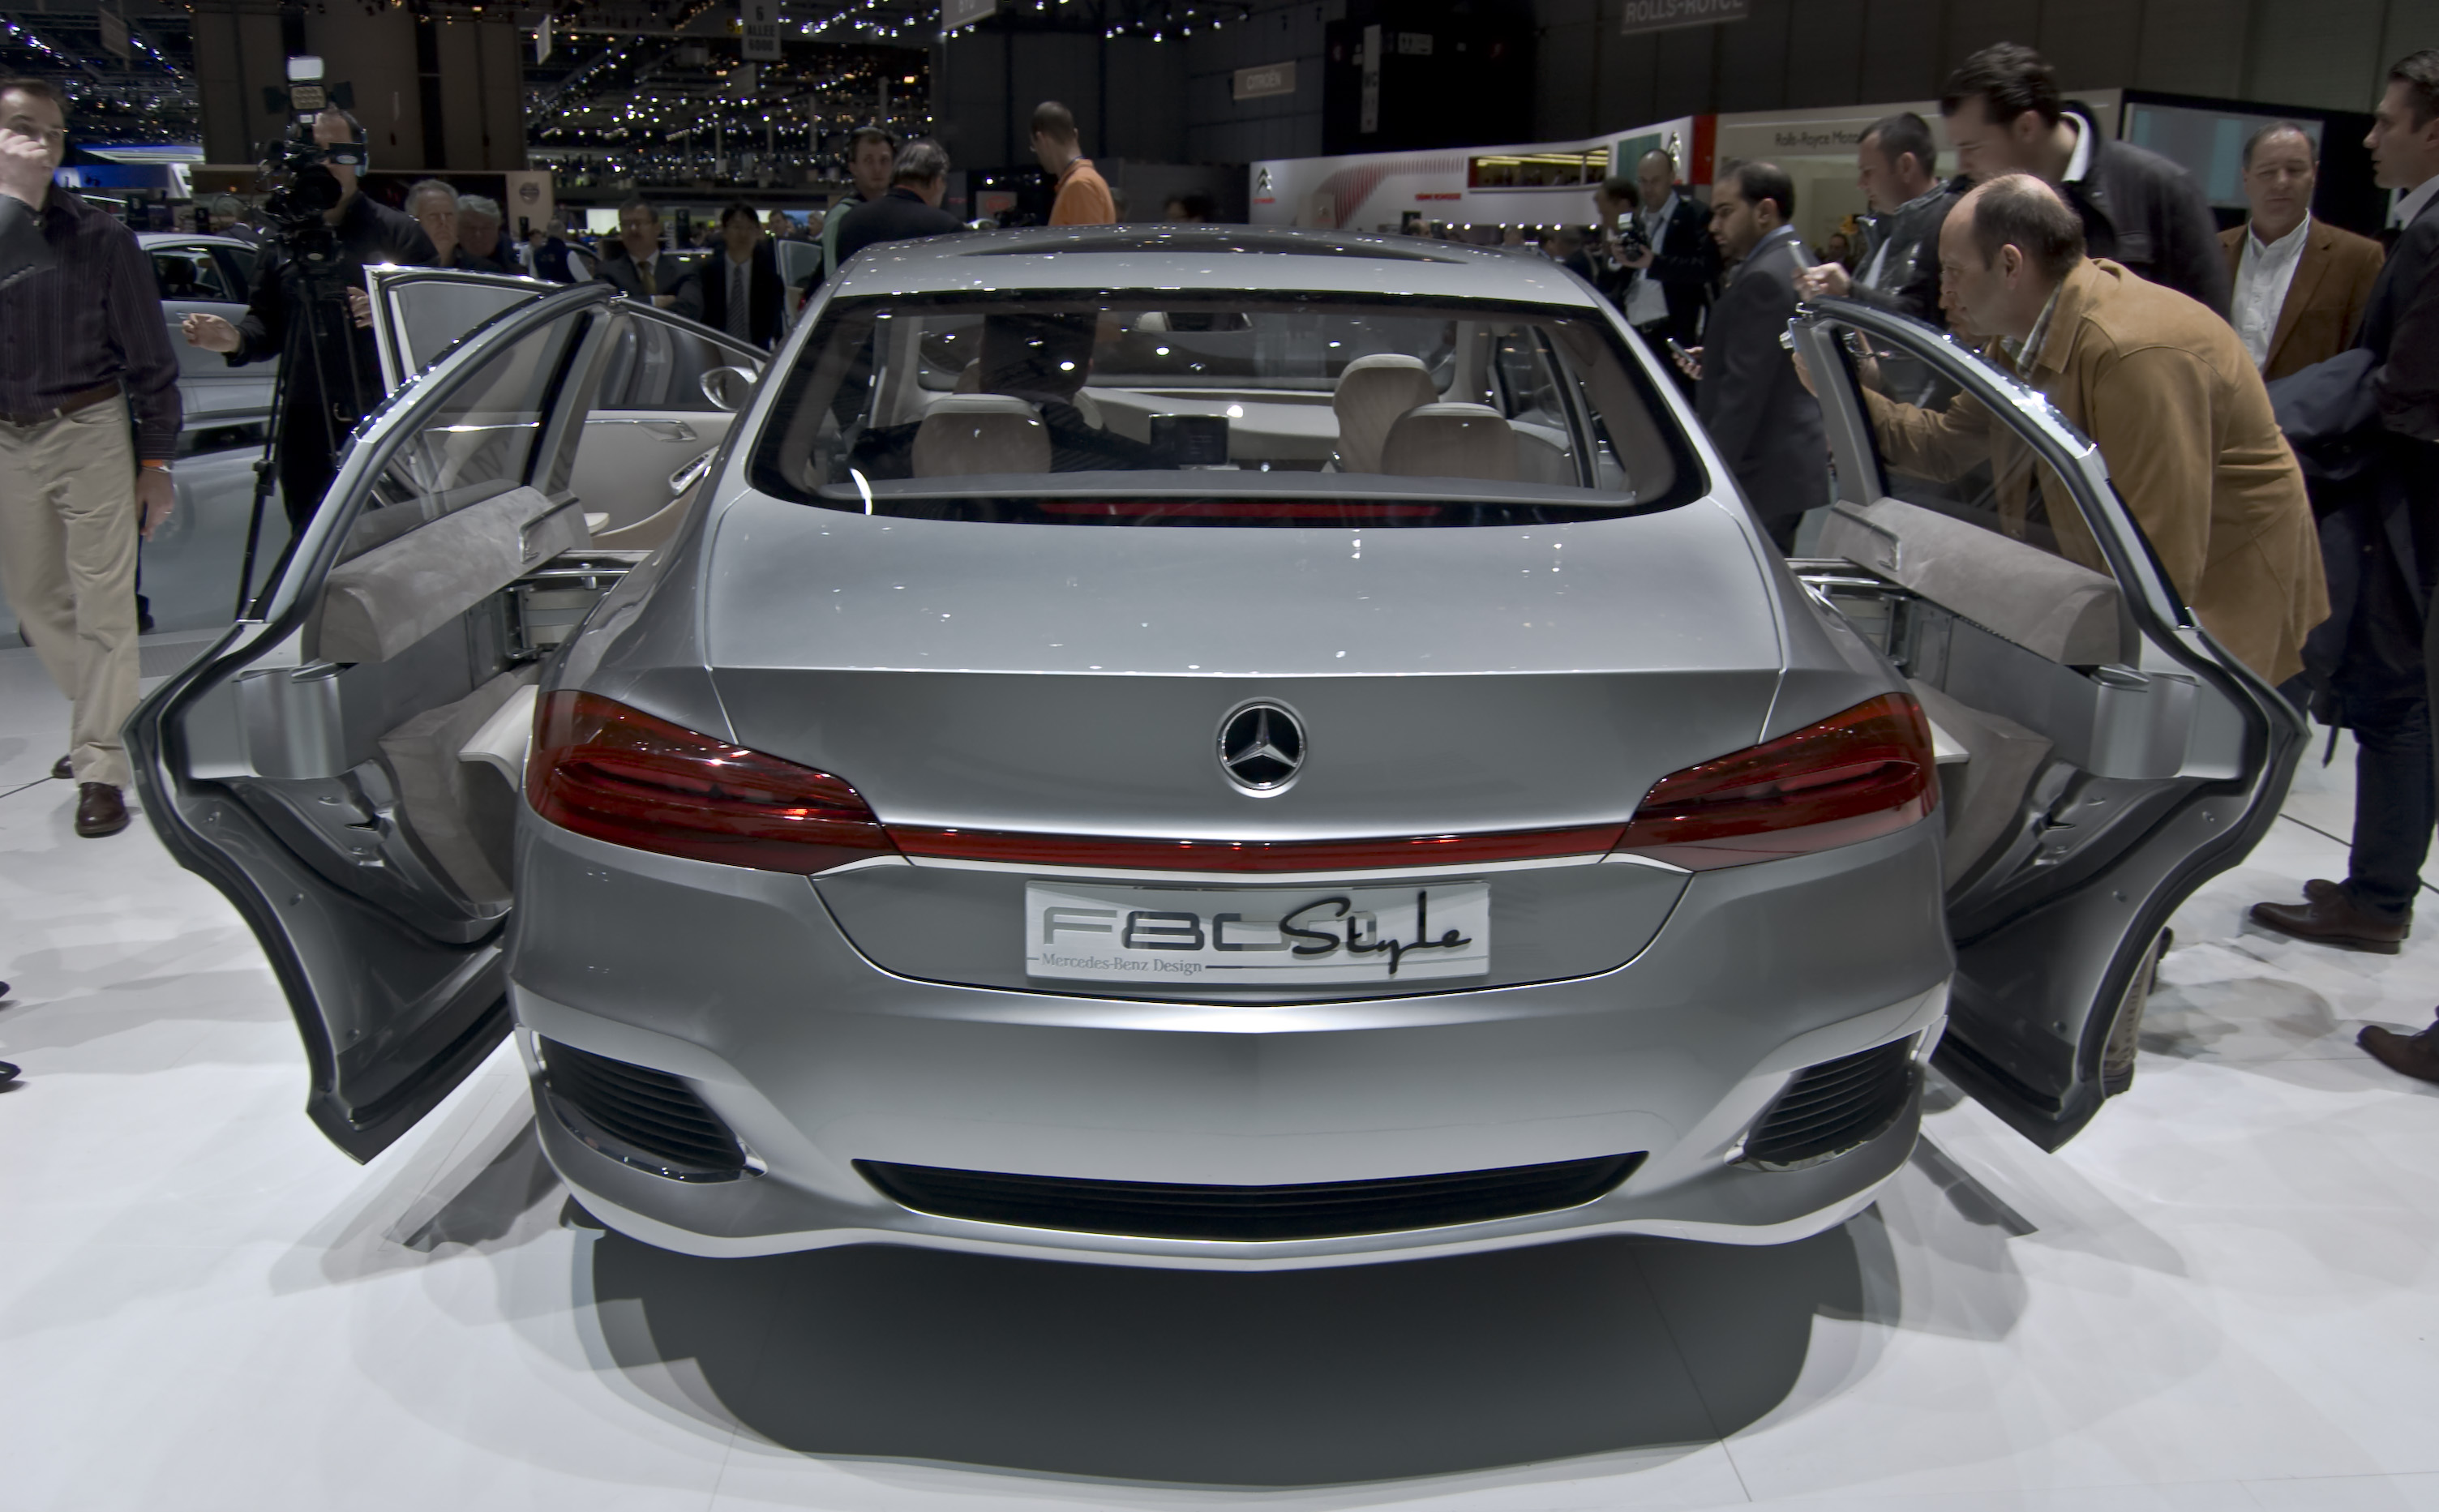 Datei mercedes benz f800 style wikipedia for Mercedes benz style